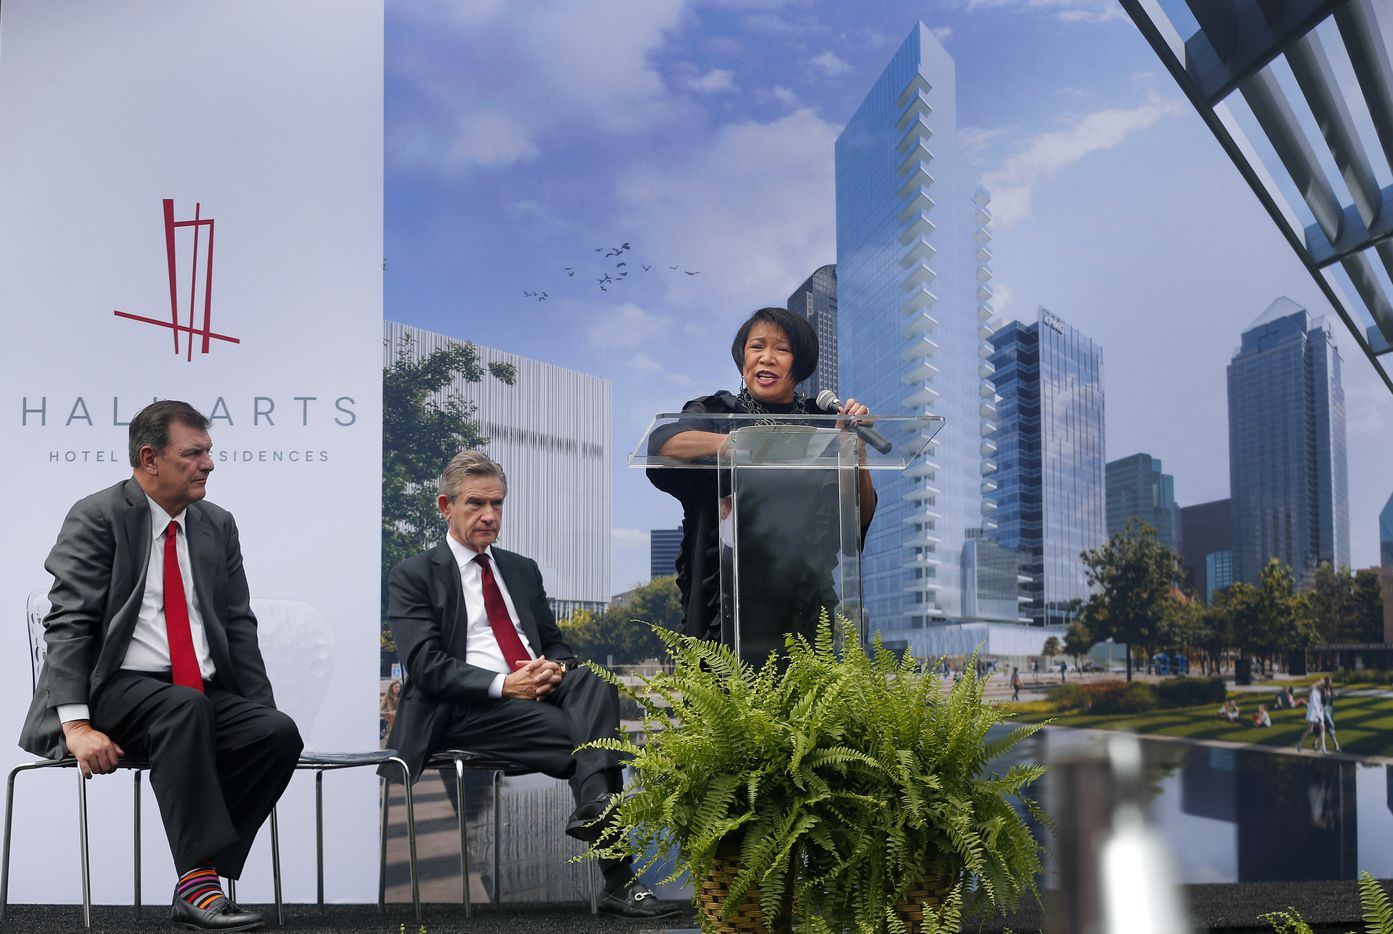 Dallas Arts District executive director Lily Weiss speaks during the groundbreaking ceremony for Hall Arts Hotel and Residences.